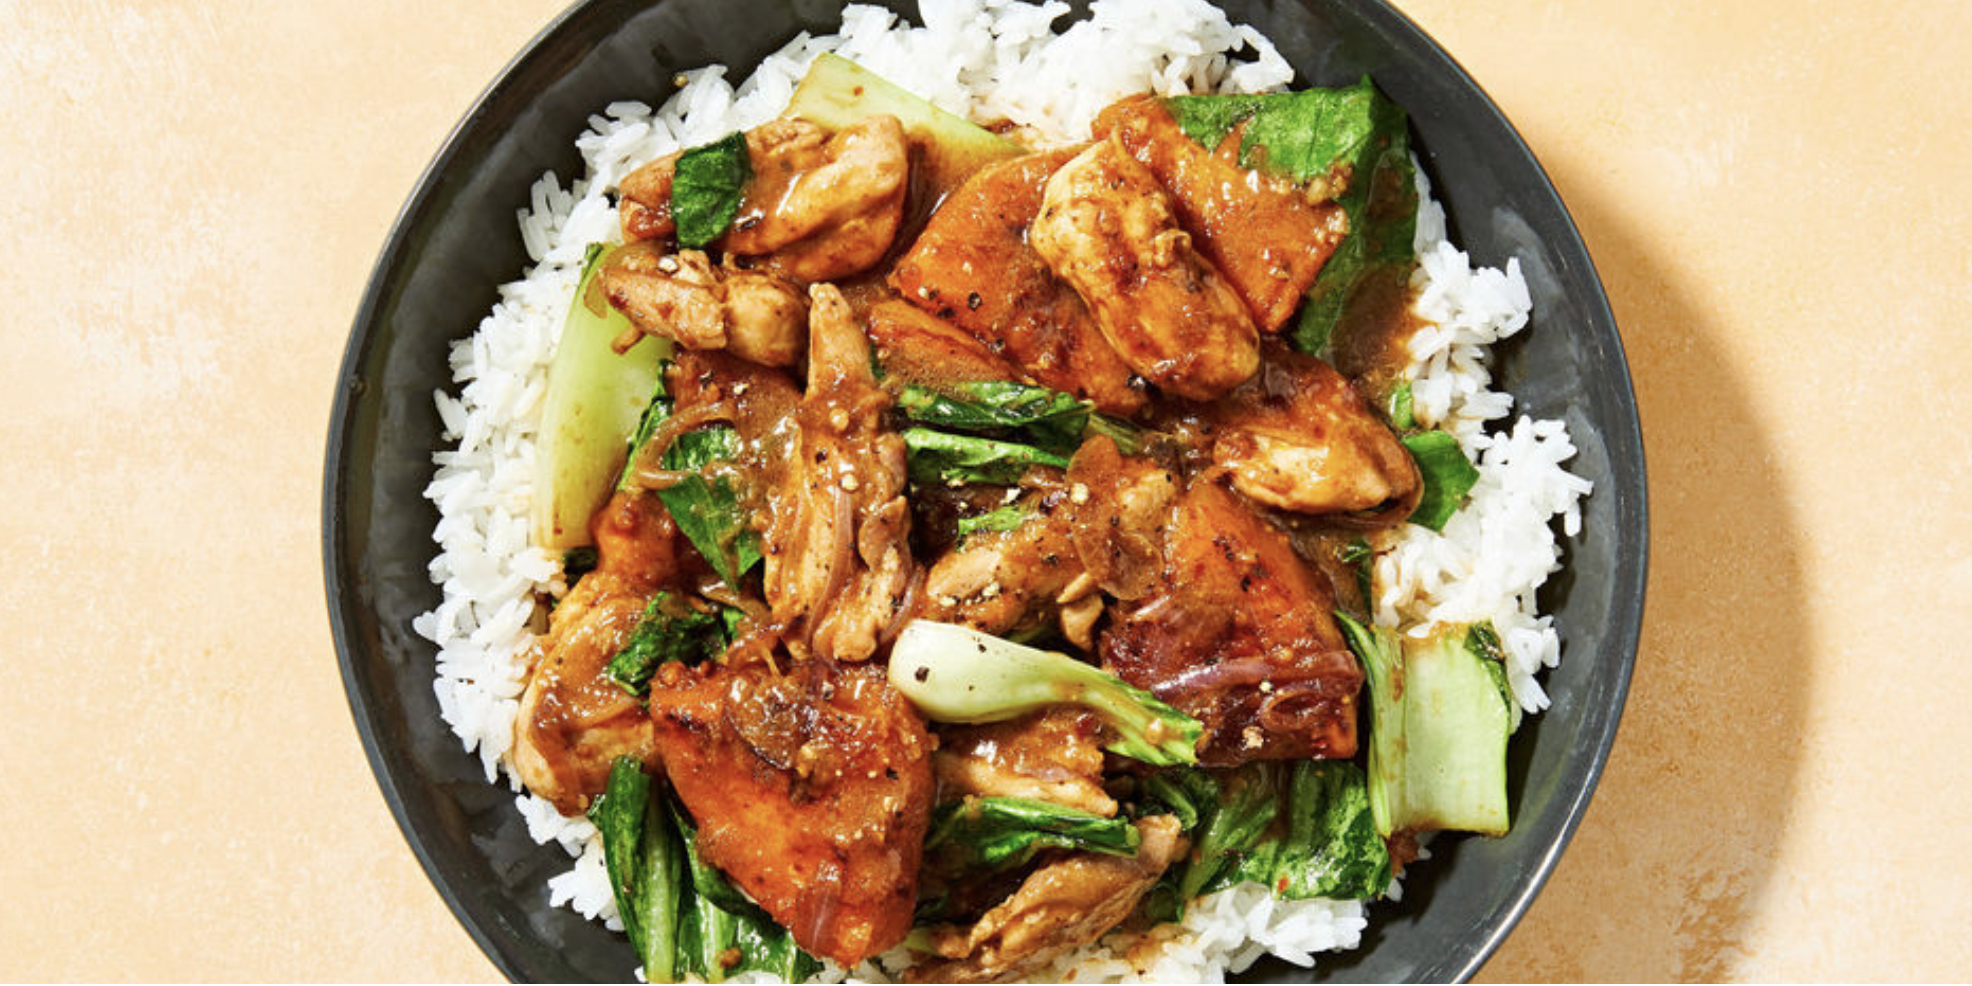 Lemongrass Chicken Stir-Fry with Pumpkin and Jasmine Rice